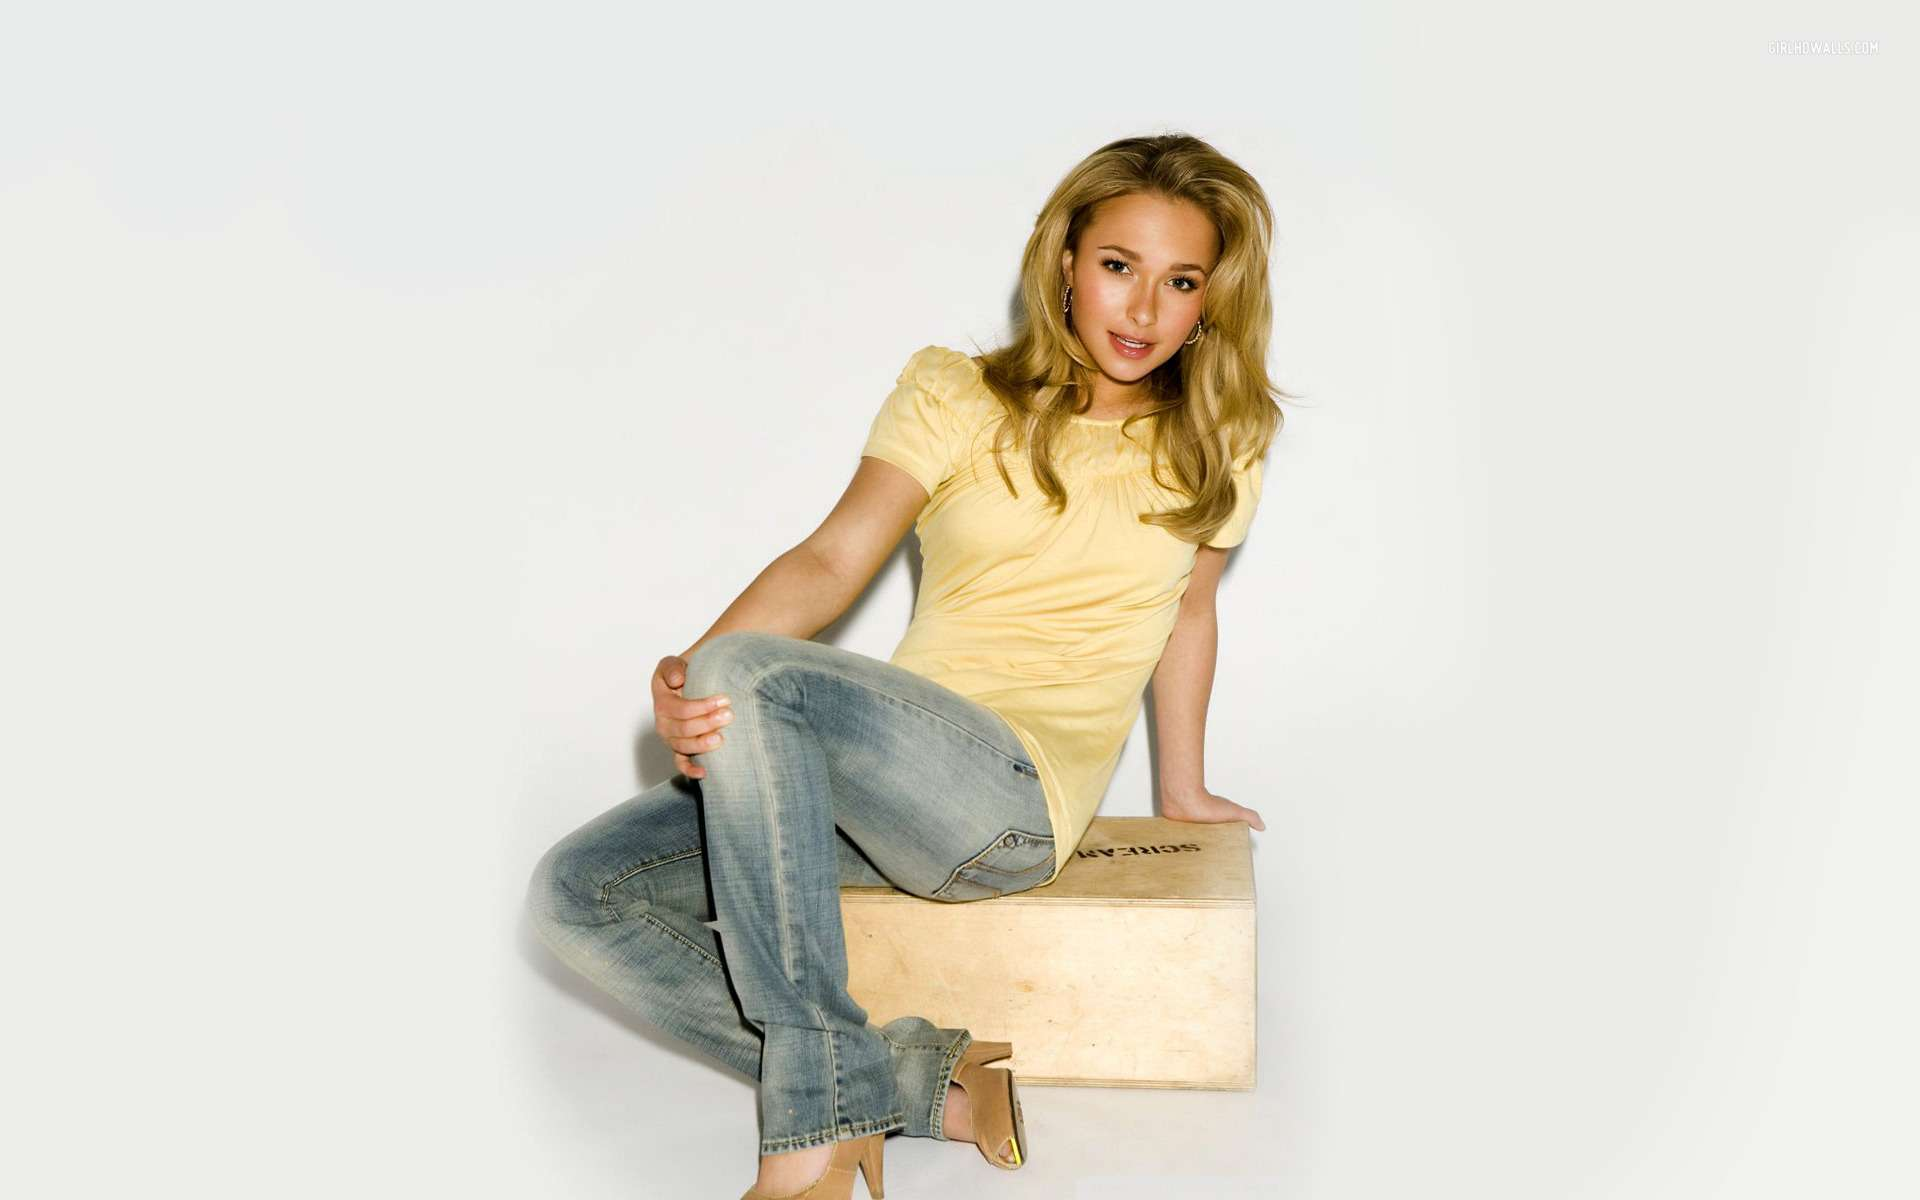 Most Beautiful Girl With Flowers Hd Wallpapers Hayden Panettiere 5 Hd Wallpapers